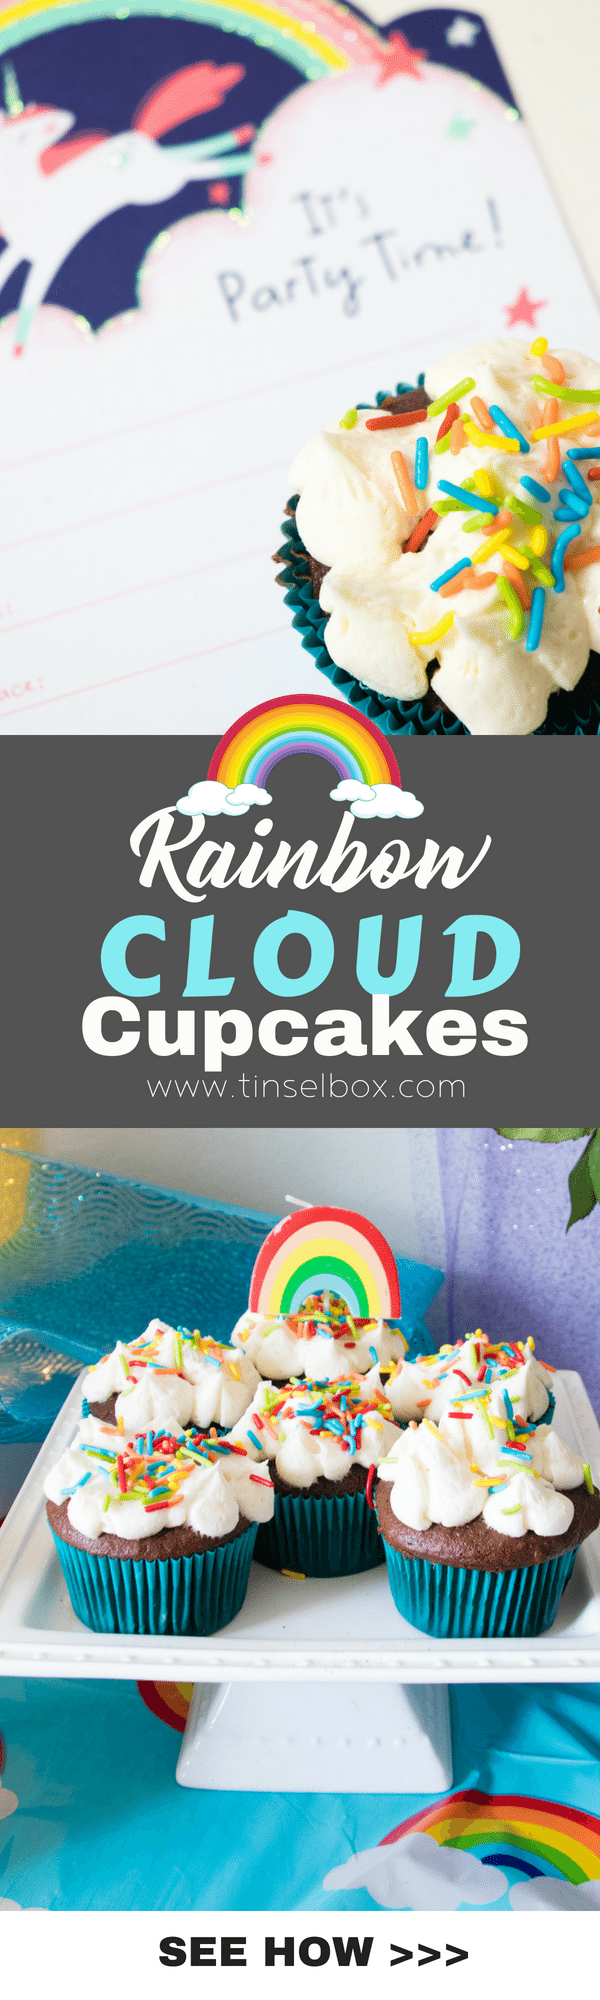 Crazy cute Rainbow Cloud Cupcakes are easy and delicious. Get the tricks to making these white, fluffy, pillowy clouds perfectly every time.  #kidsparty #rainbow #russiantips